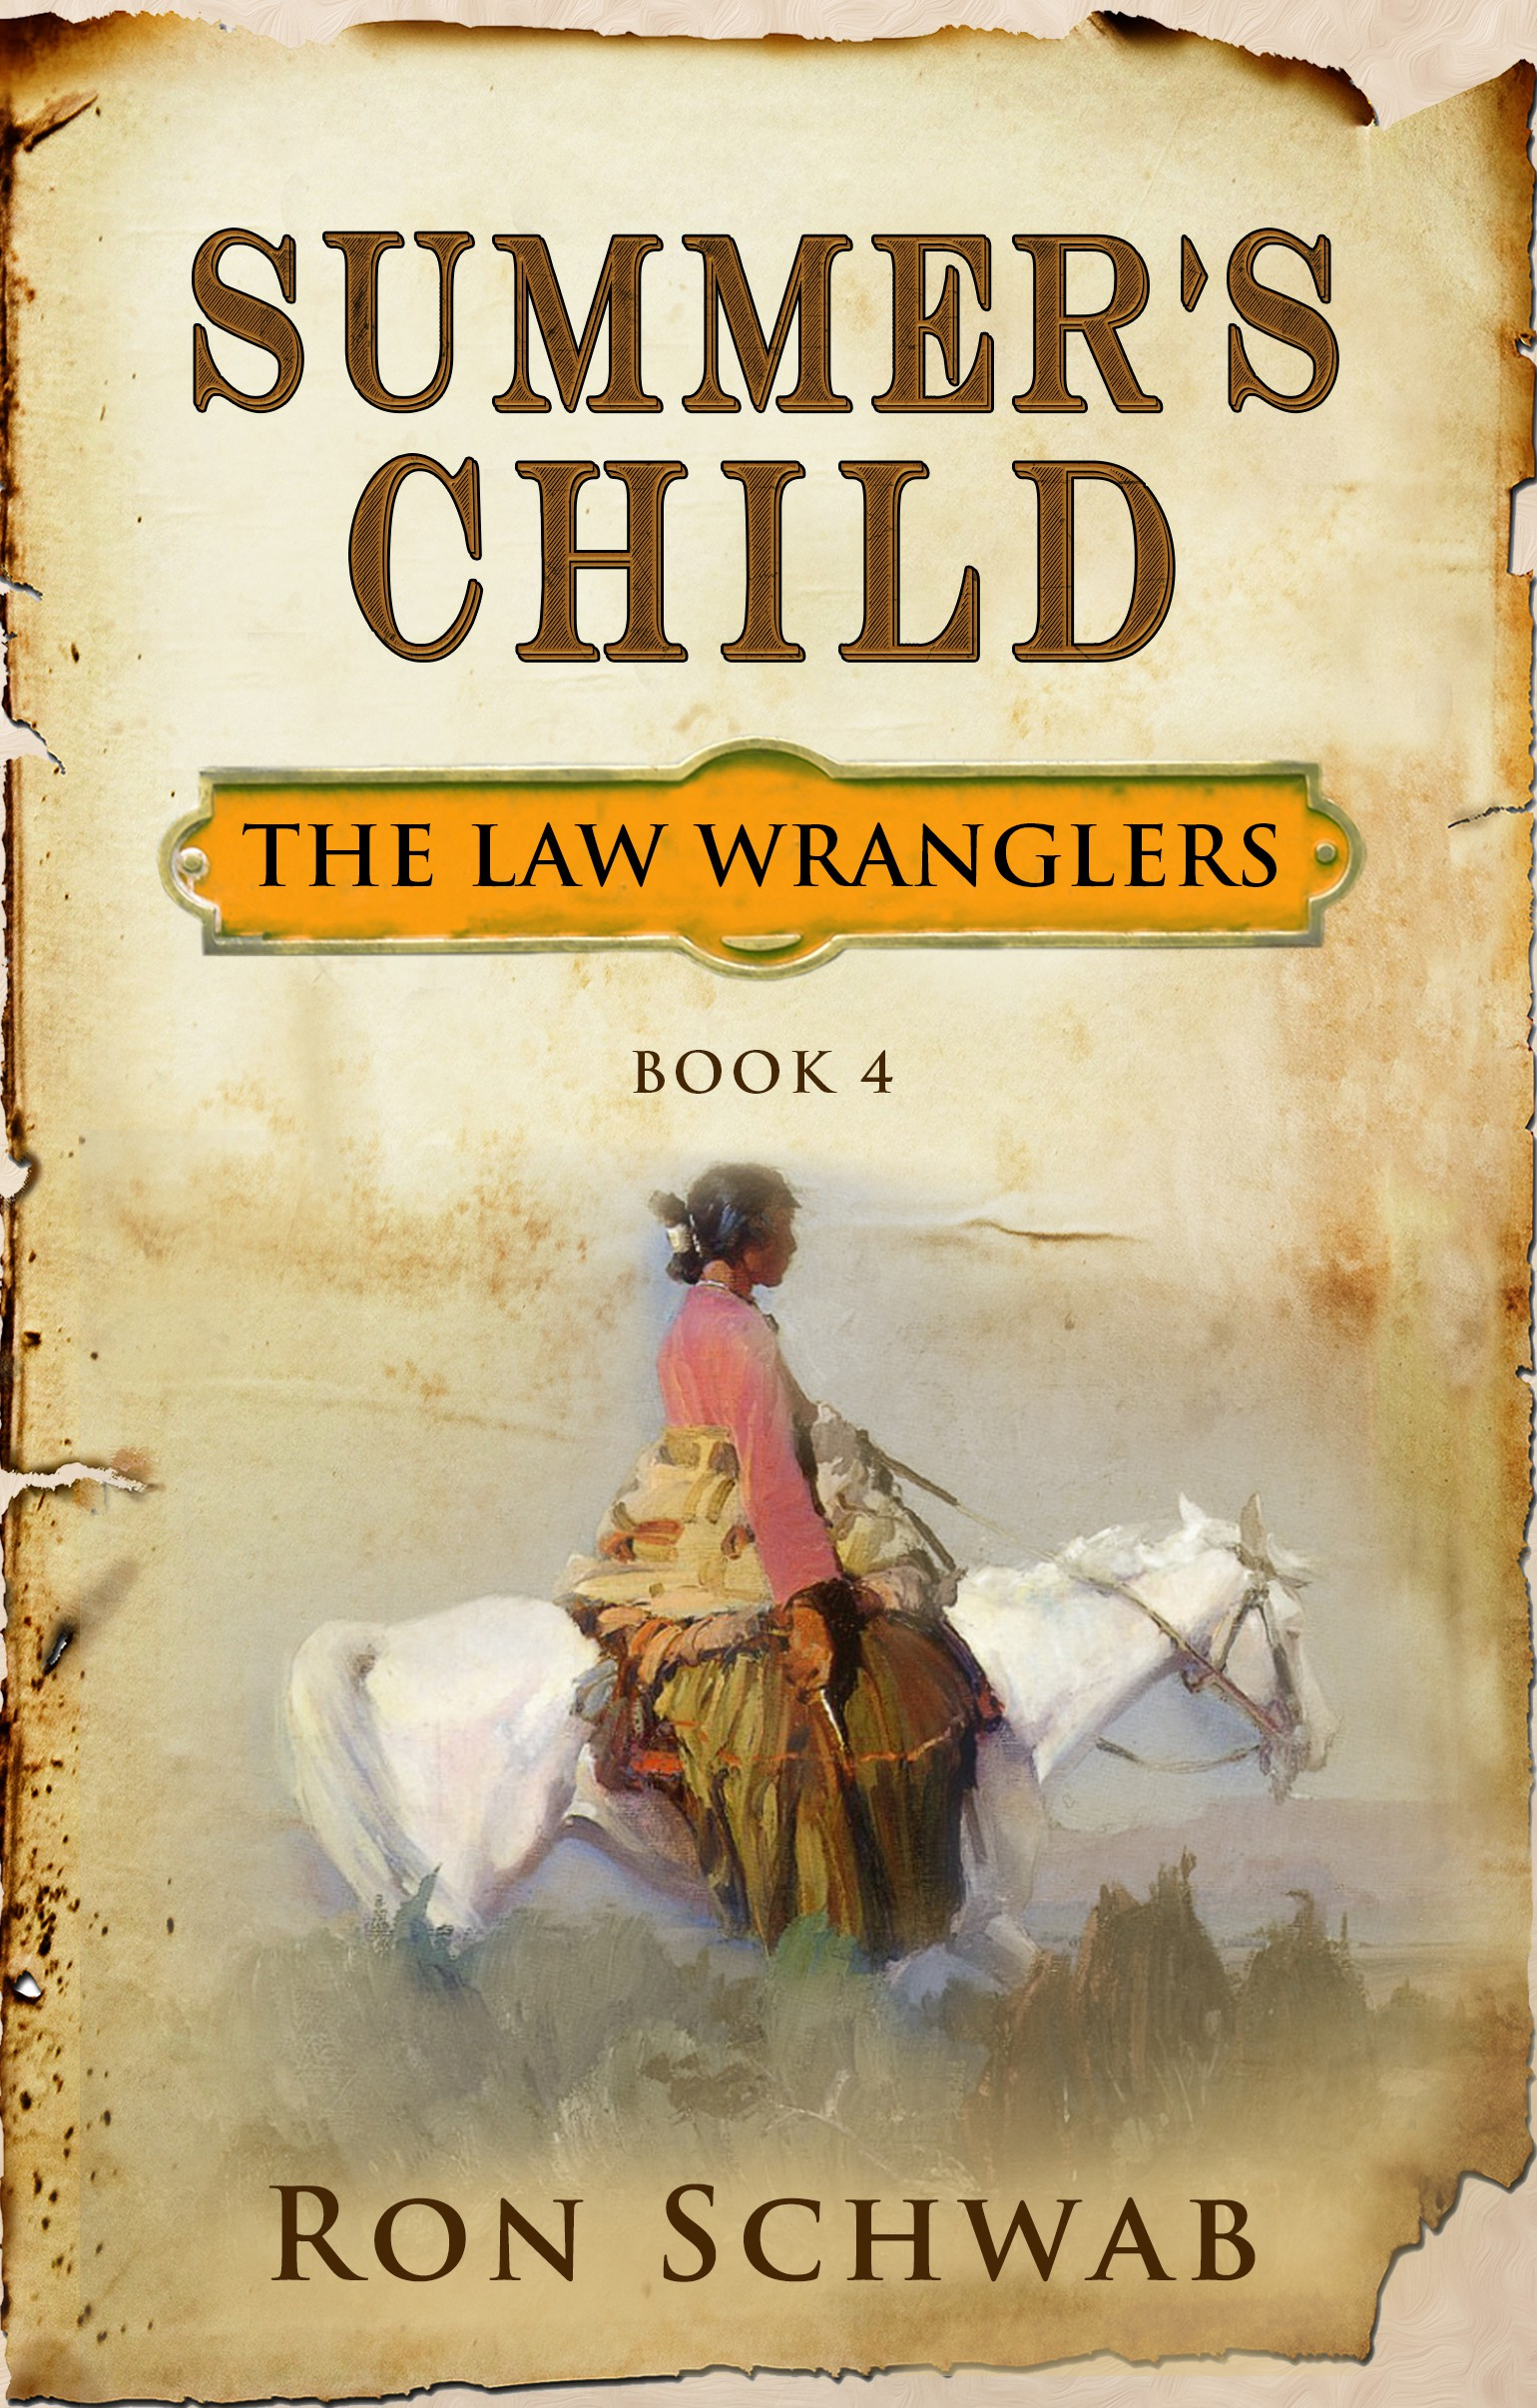 SUMMER'S CHILD - Book 4 of The Law Wranglers